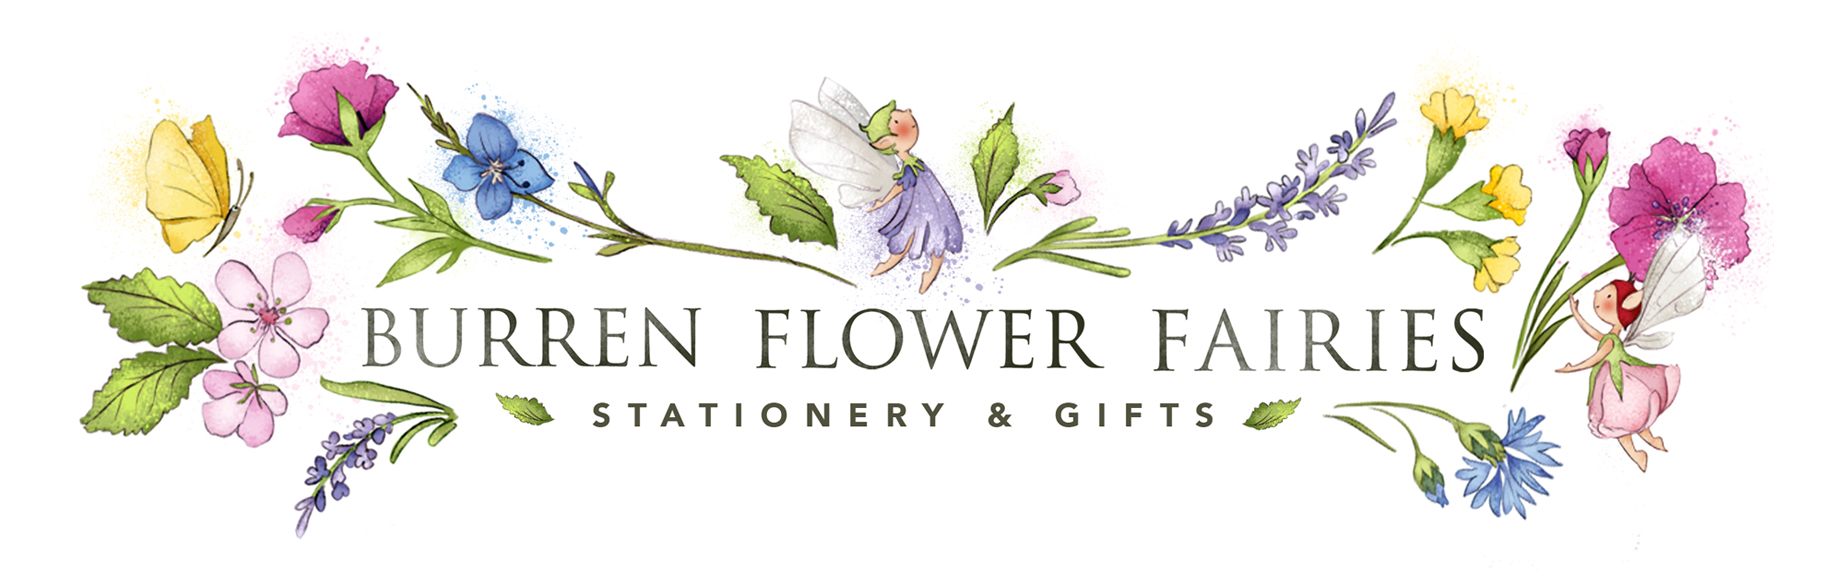 Burren Flower Fairies Logo